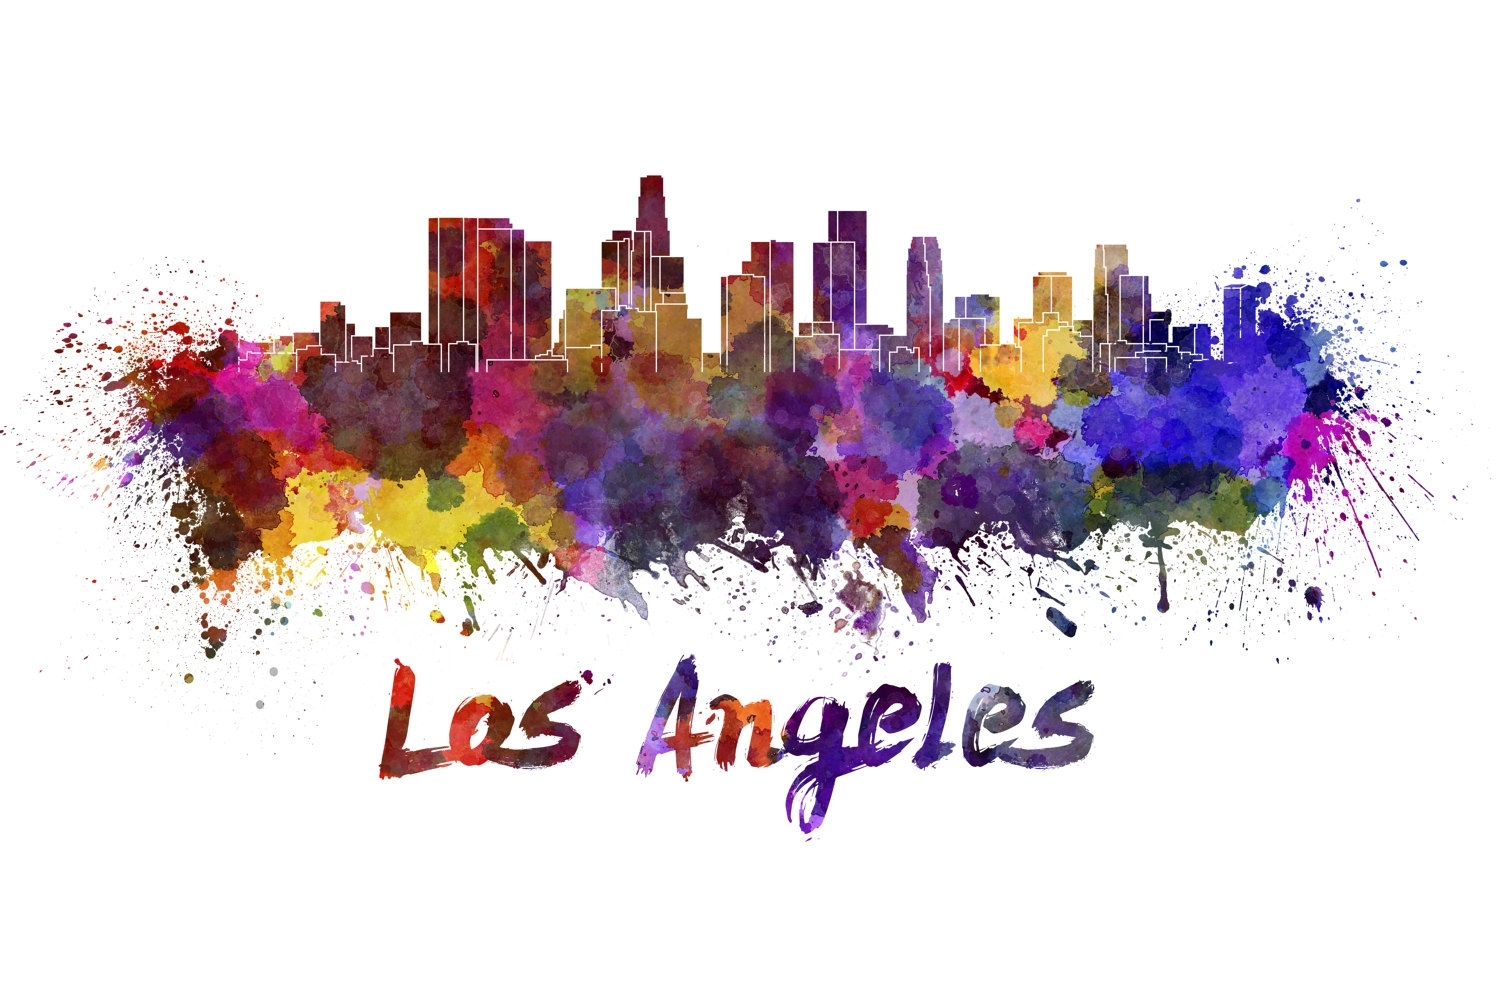 Los Angeles Skyline Watercolor Canvas, Los Angeles Canvas Print Throughout Most Current Los Angeles Canvas Wall Art (Gallery 14 of 15)